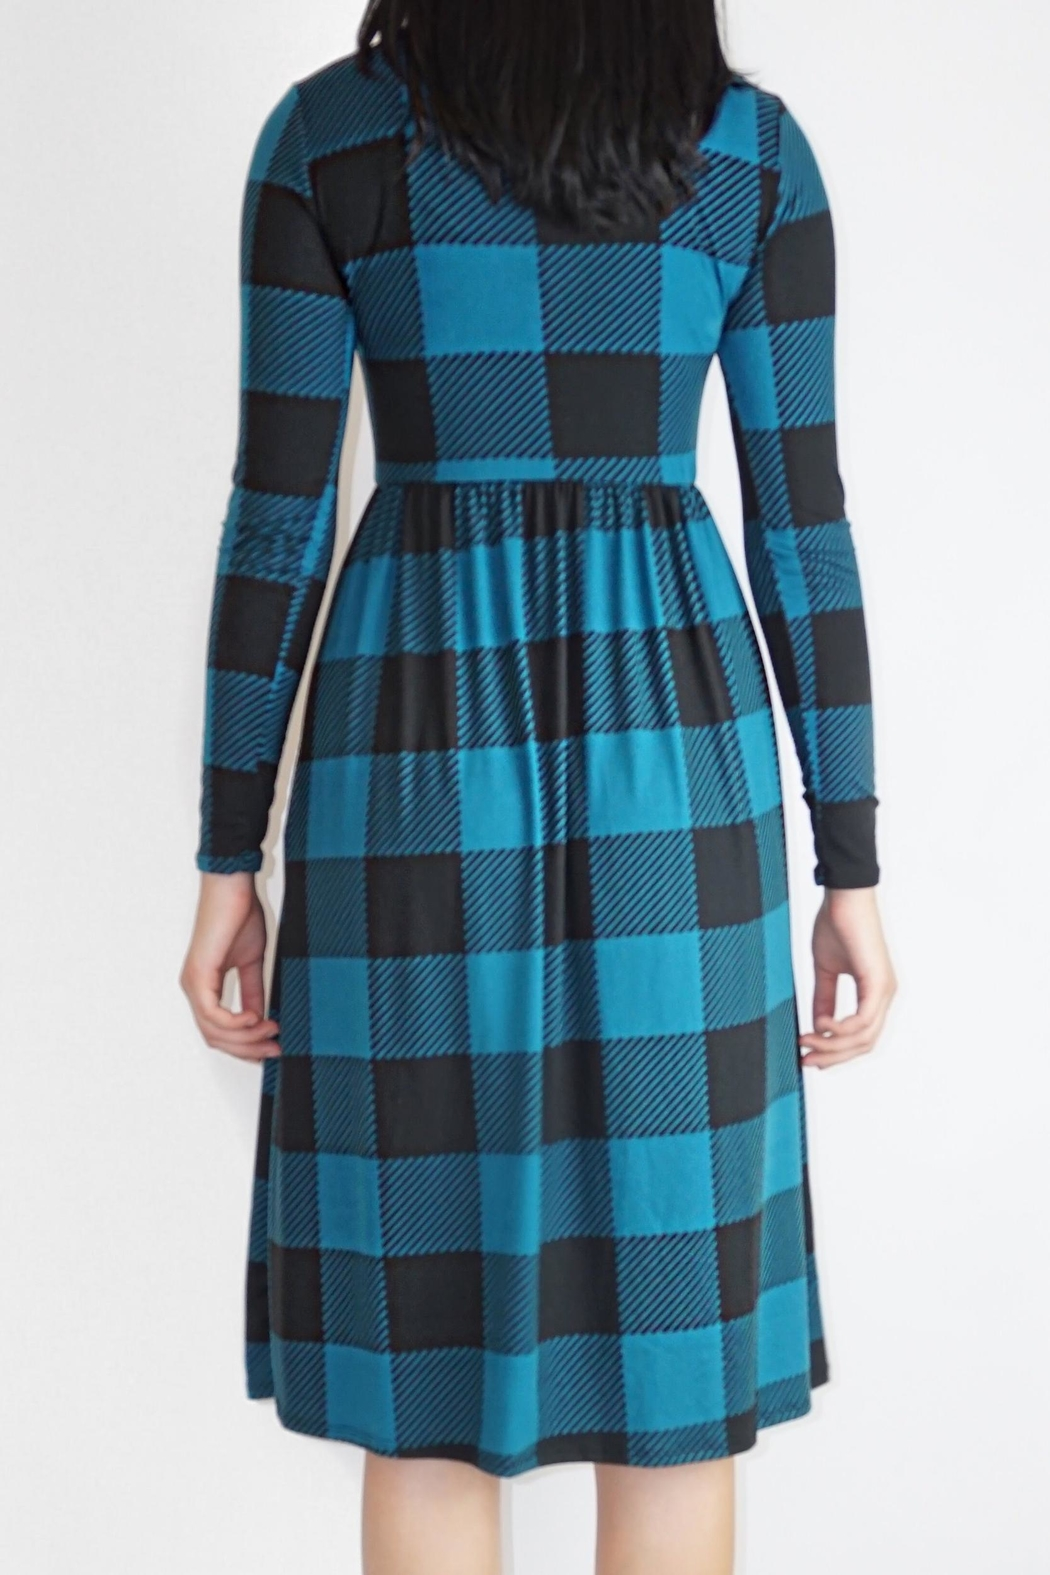 annabelle Teal Checkered Dress - Side Cropped Image